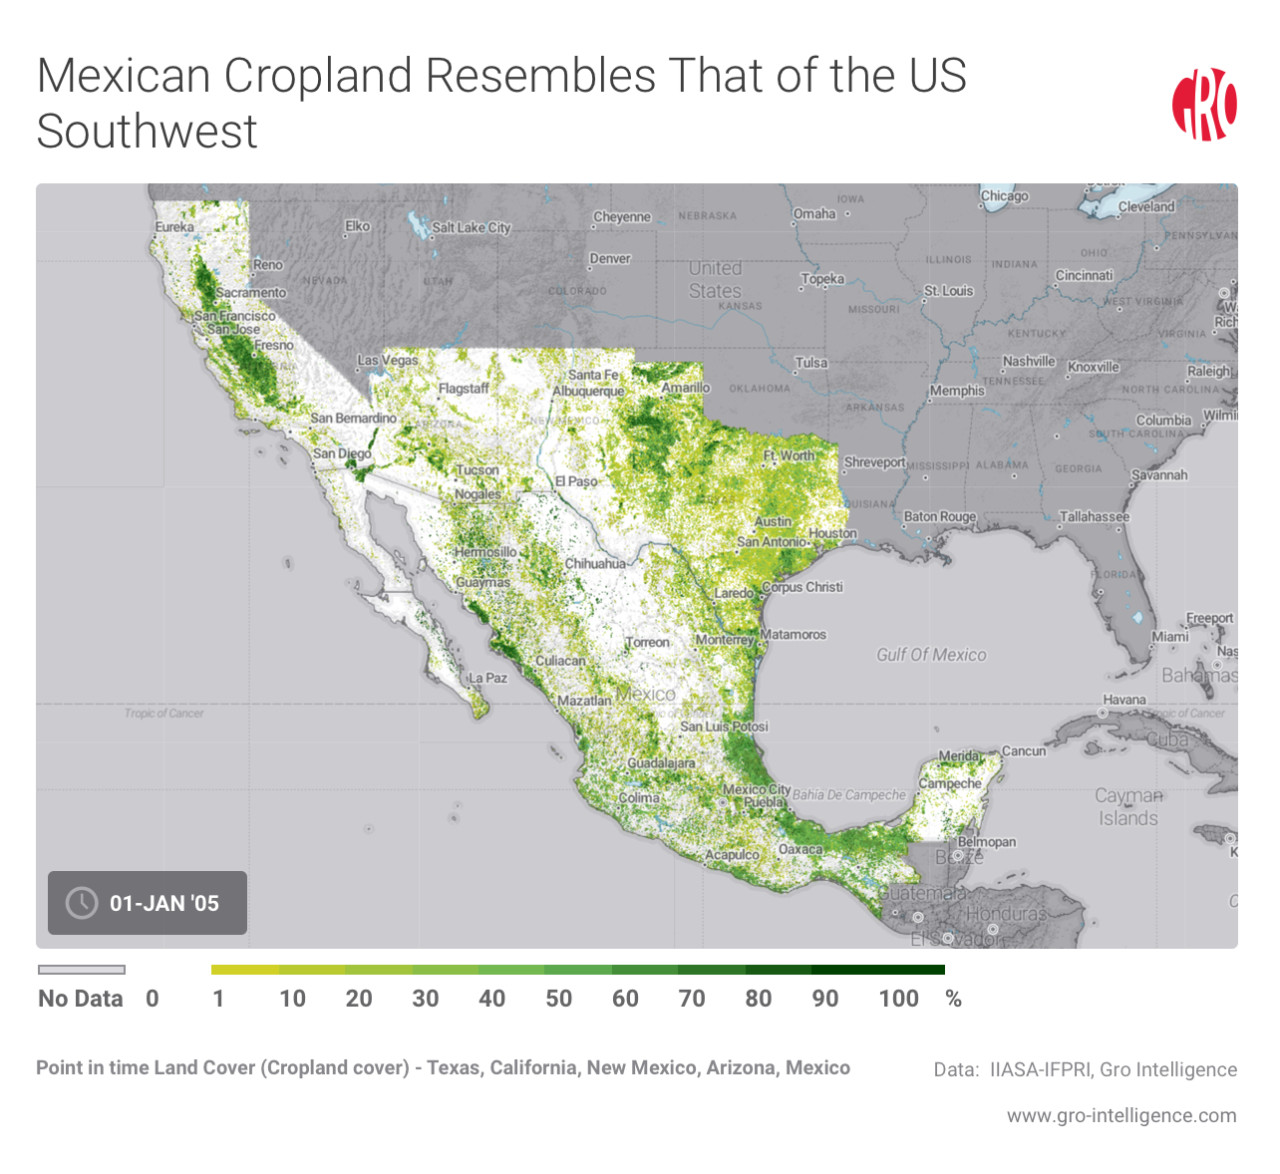 Mexican Cropland Resembles That of the US Southwest